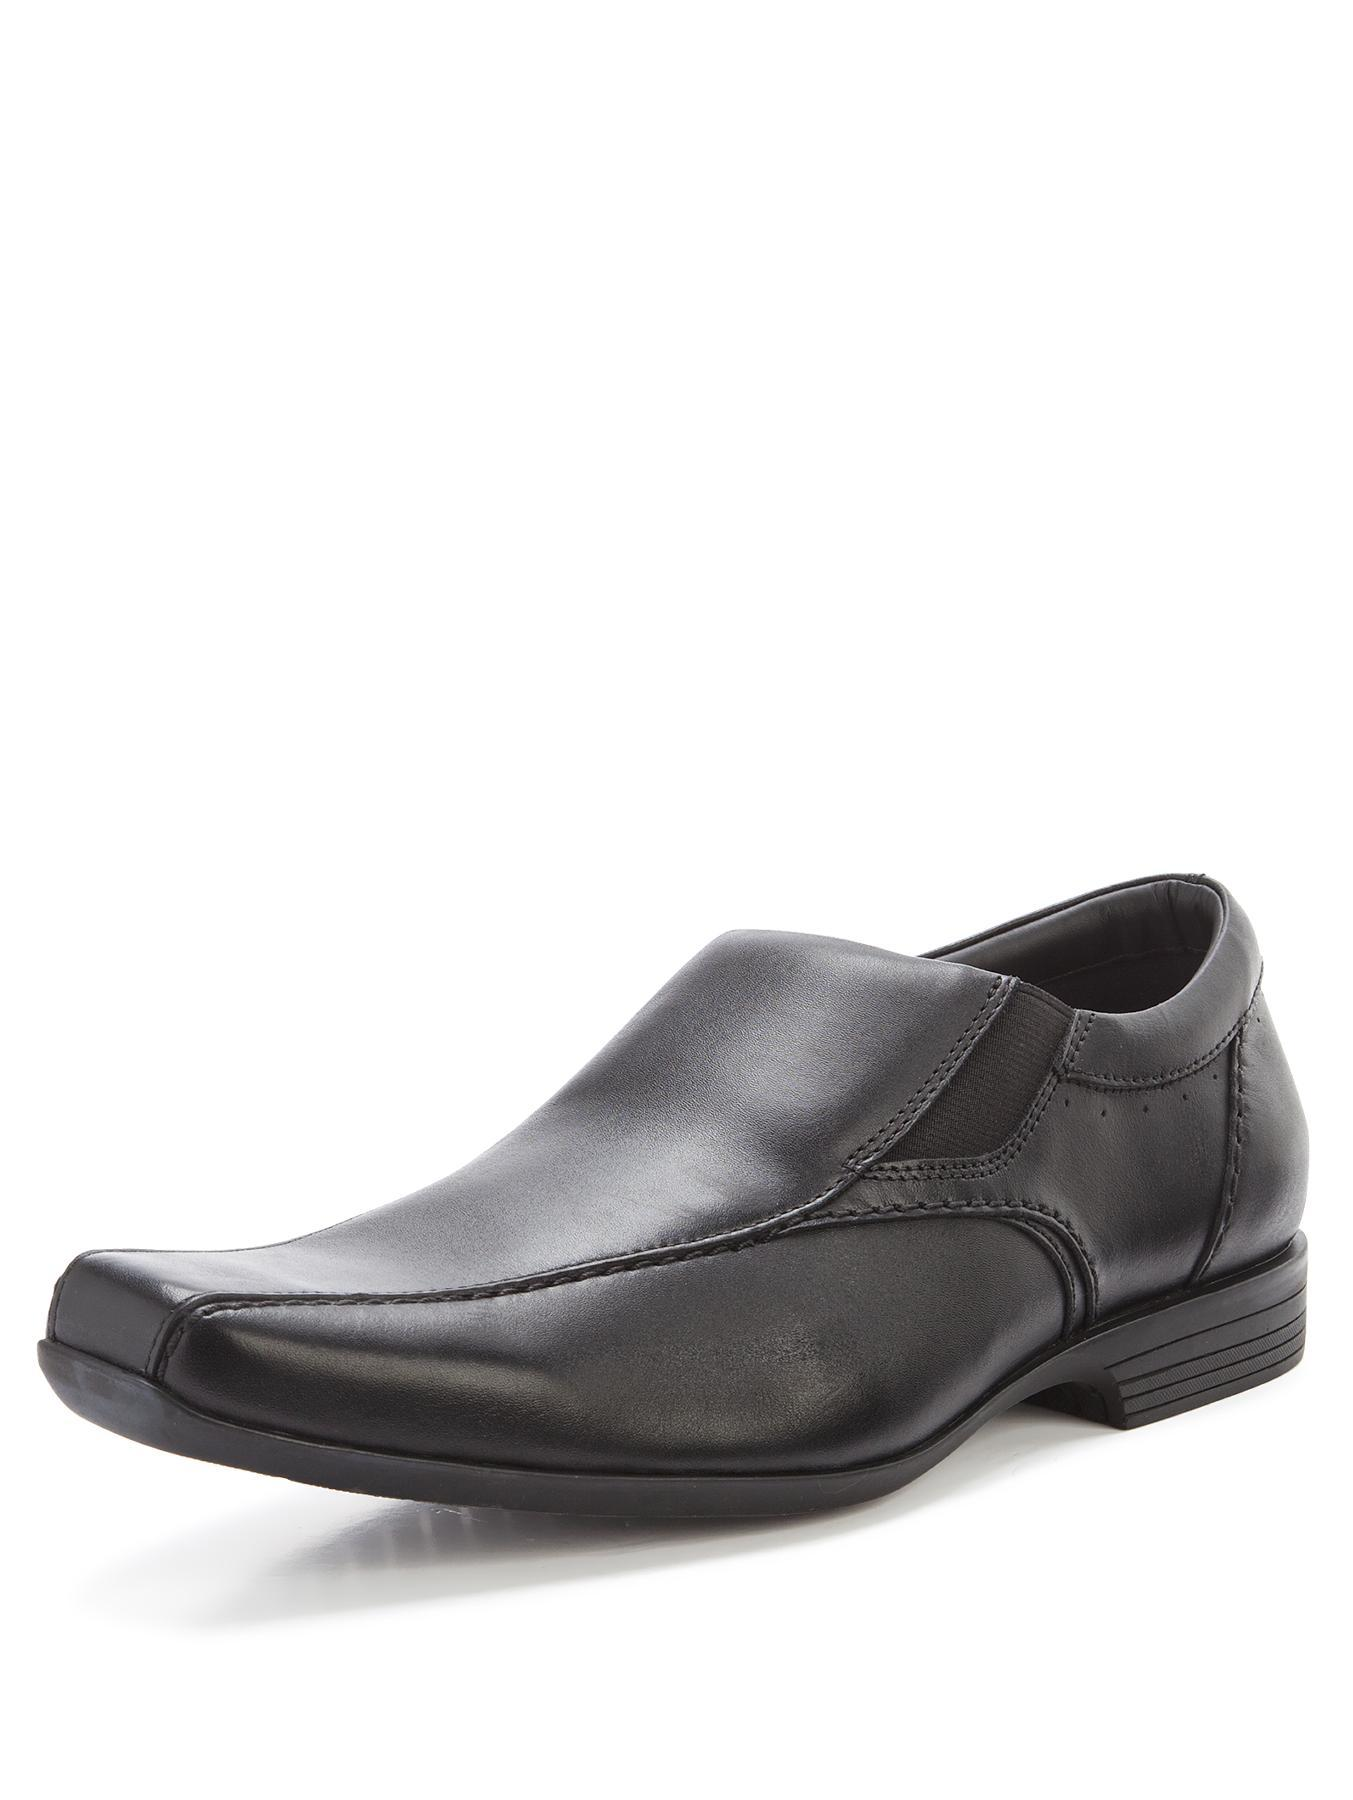 Clarks Forbes Step Slip On Shoes - Black, Black